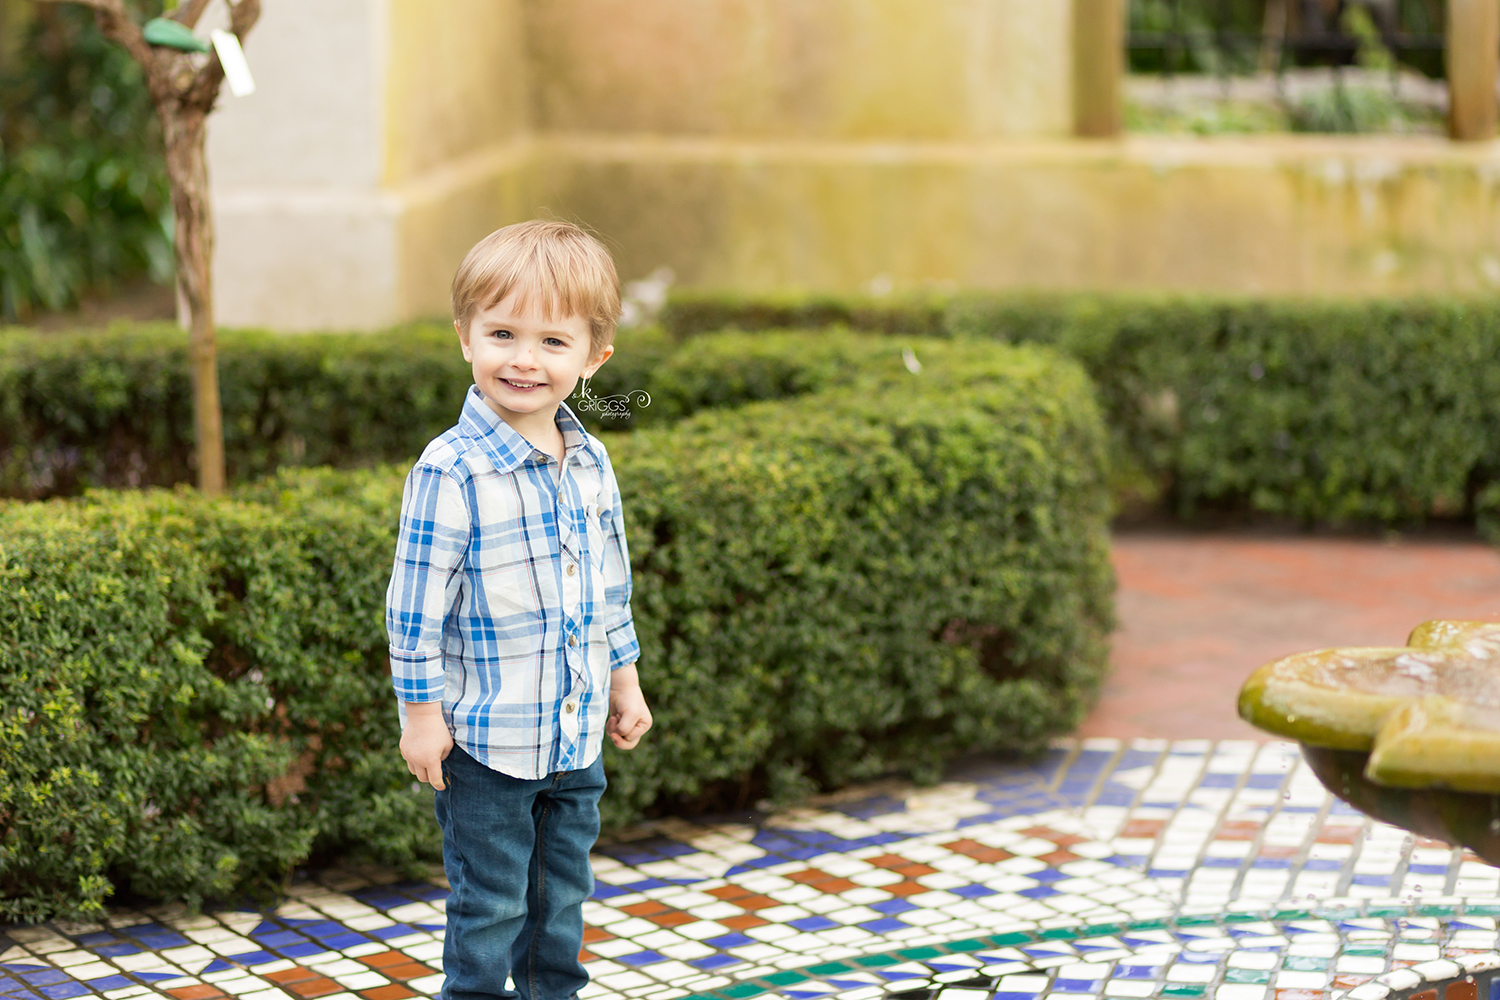 Young boy standing near small pool - St. Louis Children's Photographer